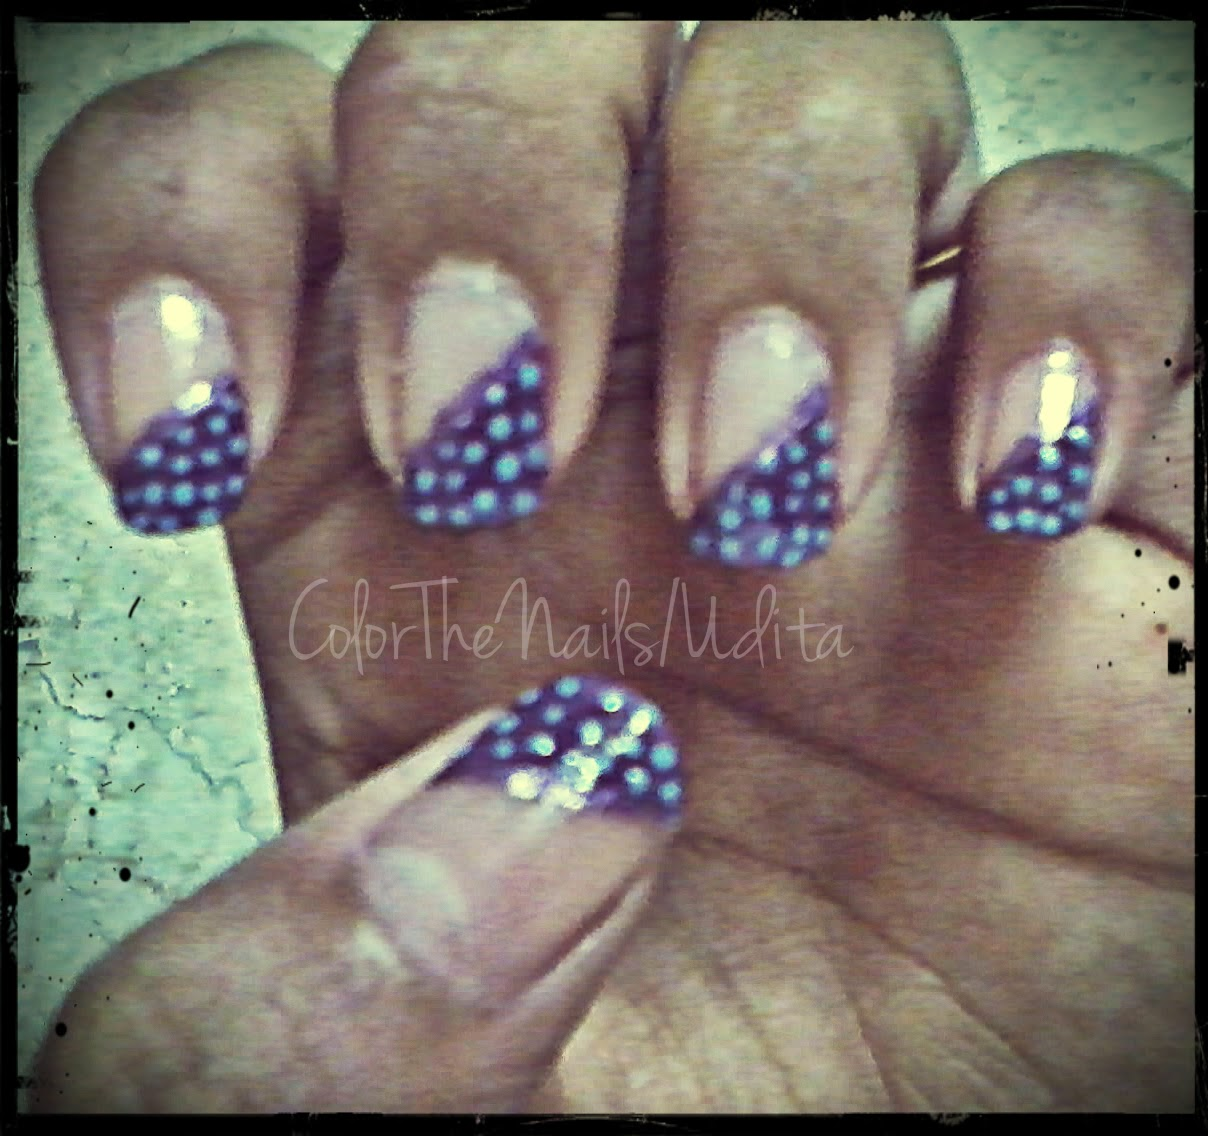 My First Ever Nail Art Design - Diagonal French | Color The Nails